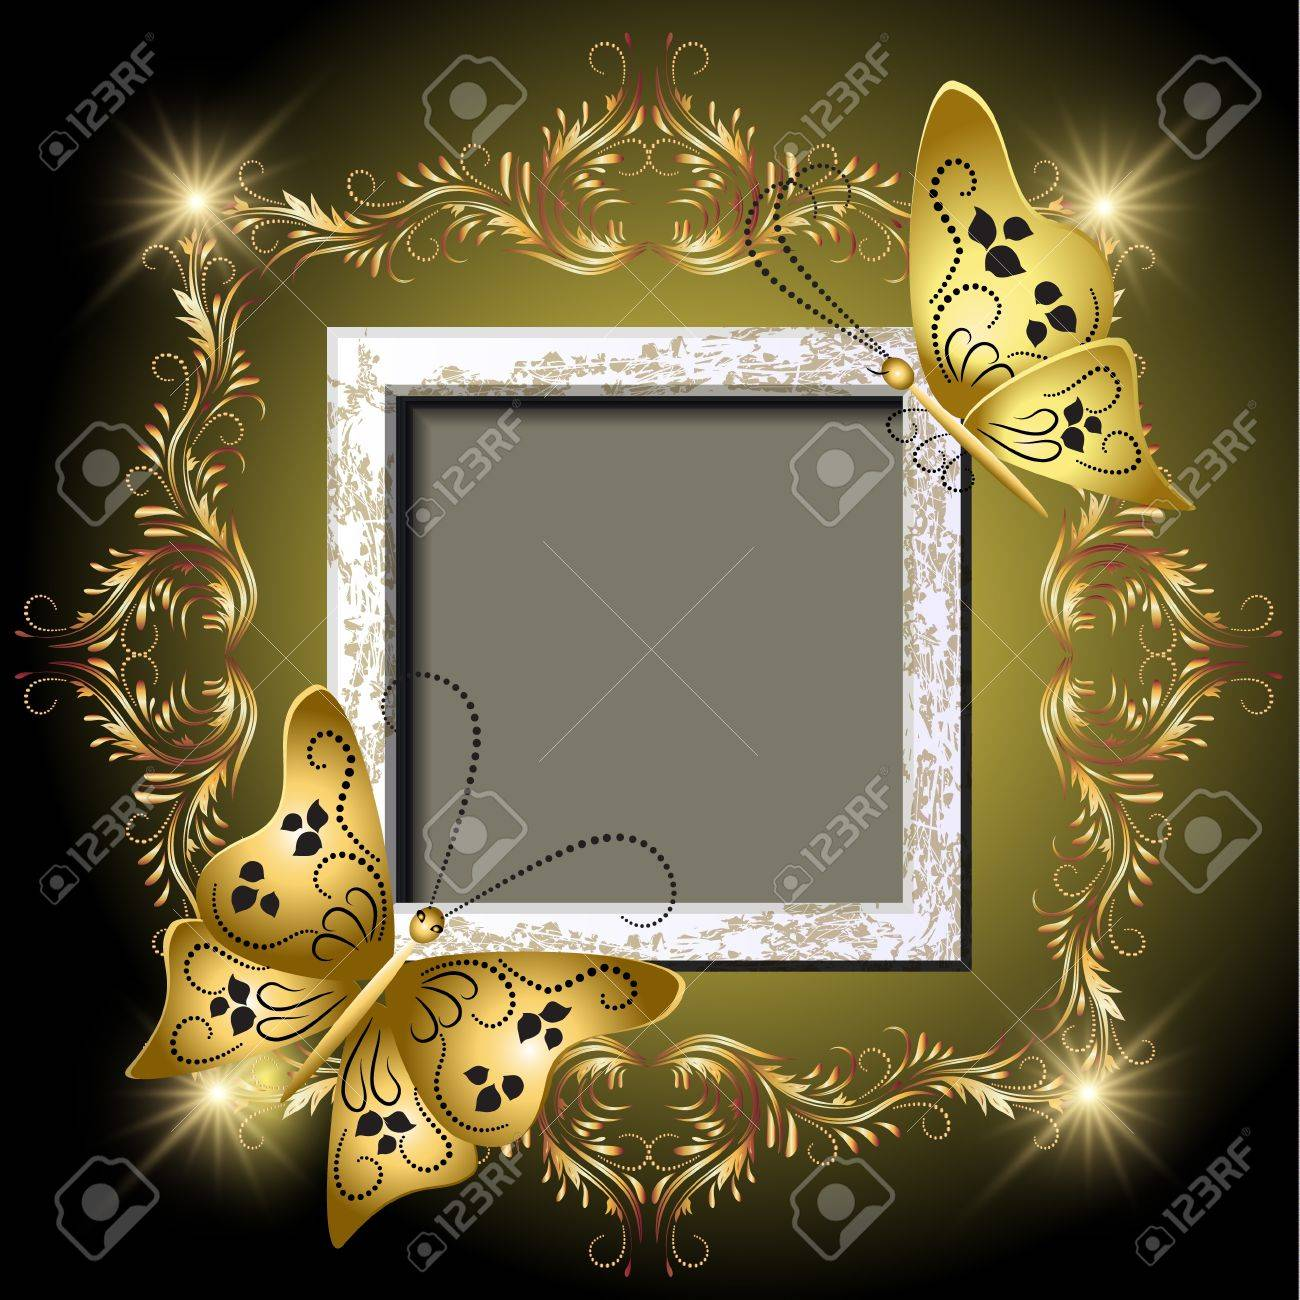 Background with grungy photo frame, butterflies and golden ornament for inserting text and photo - 13623219